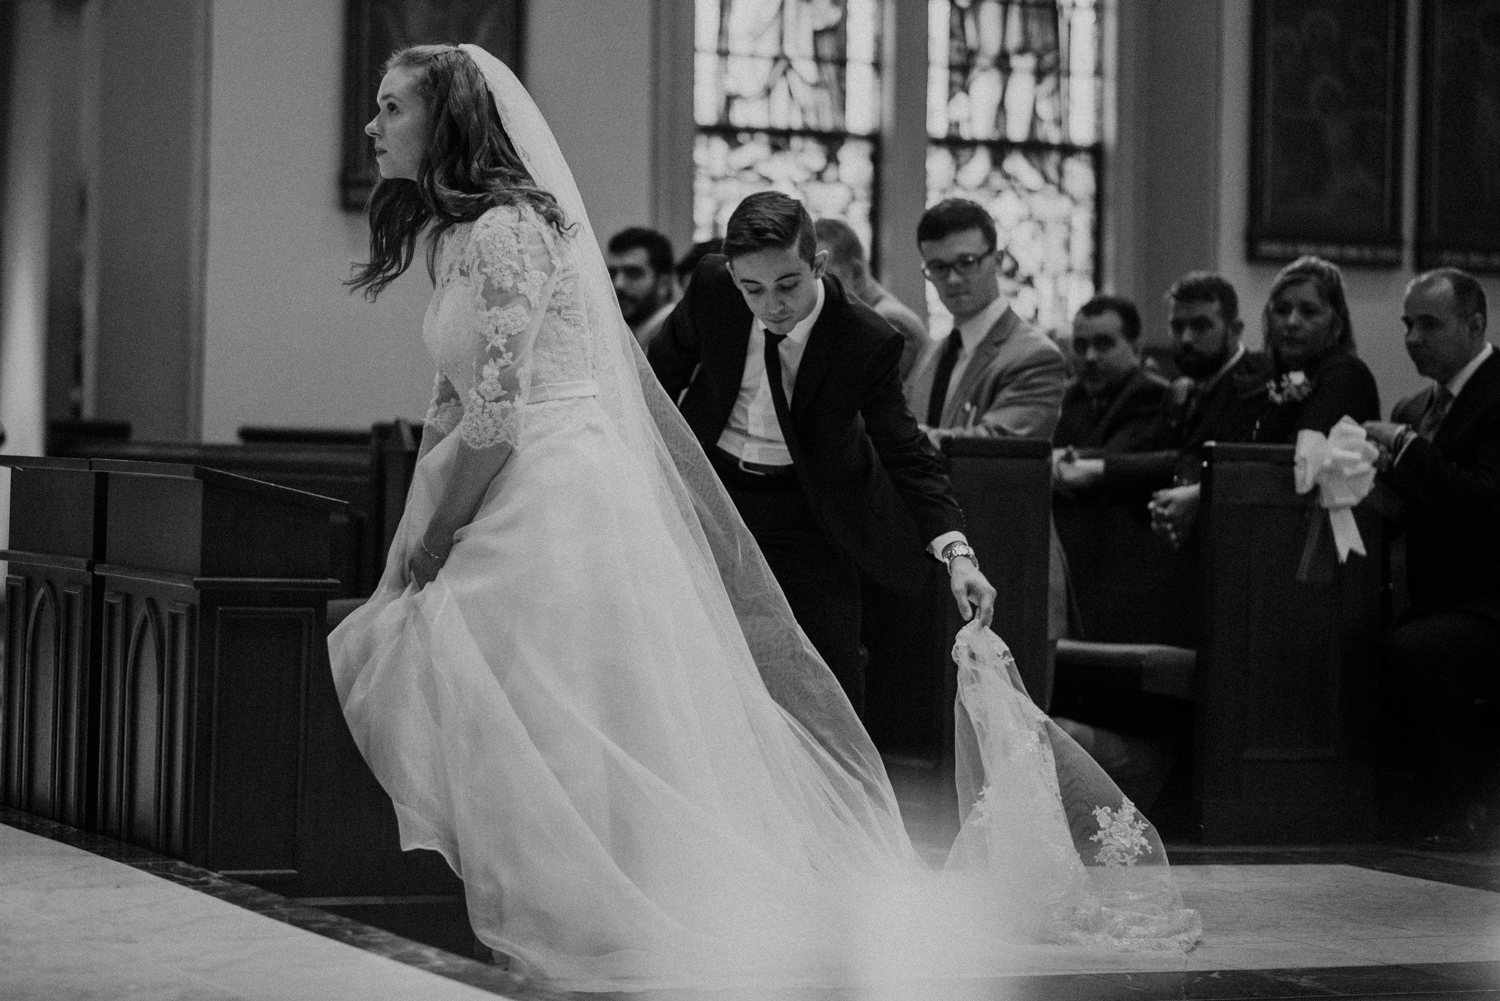 allison-christopher-old-saint-marys-catholic-wedding-31.jpg